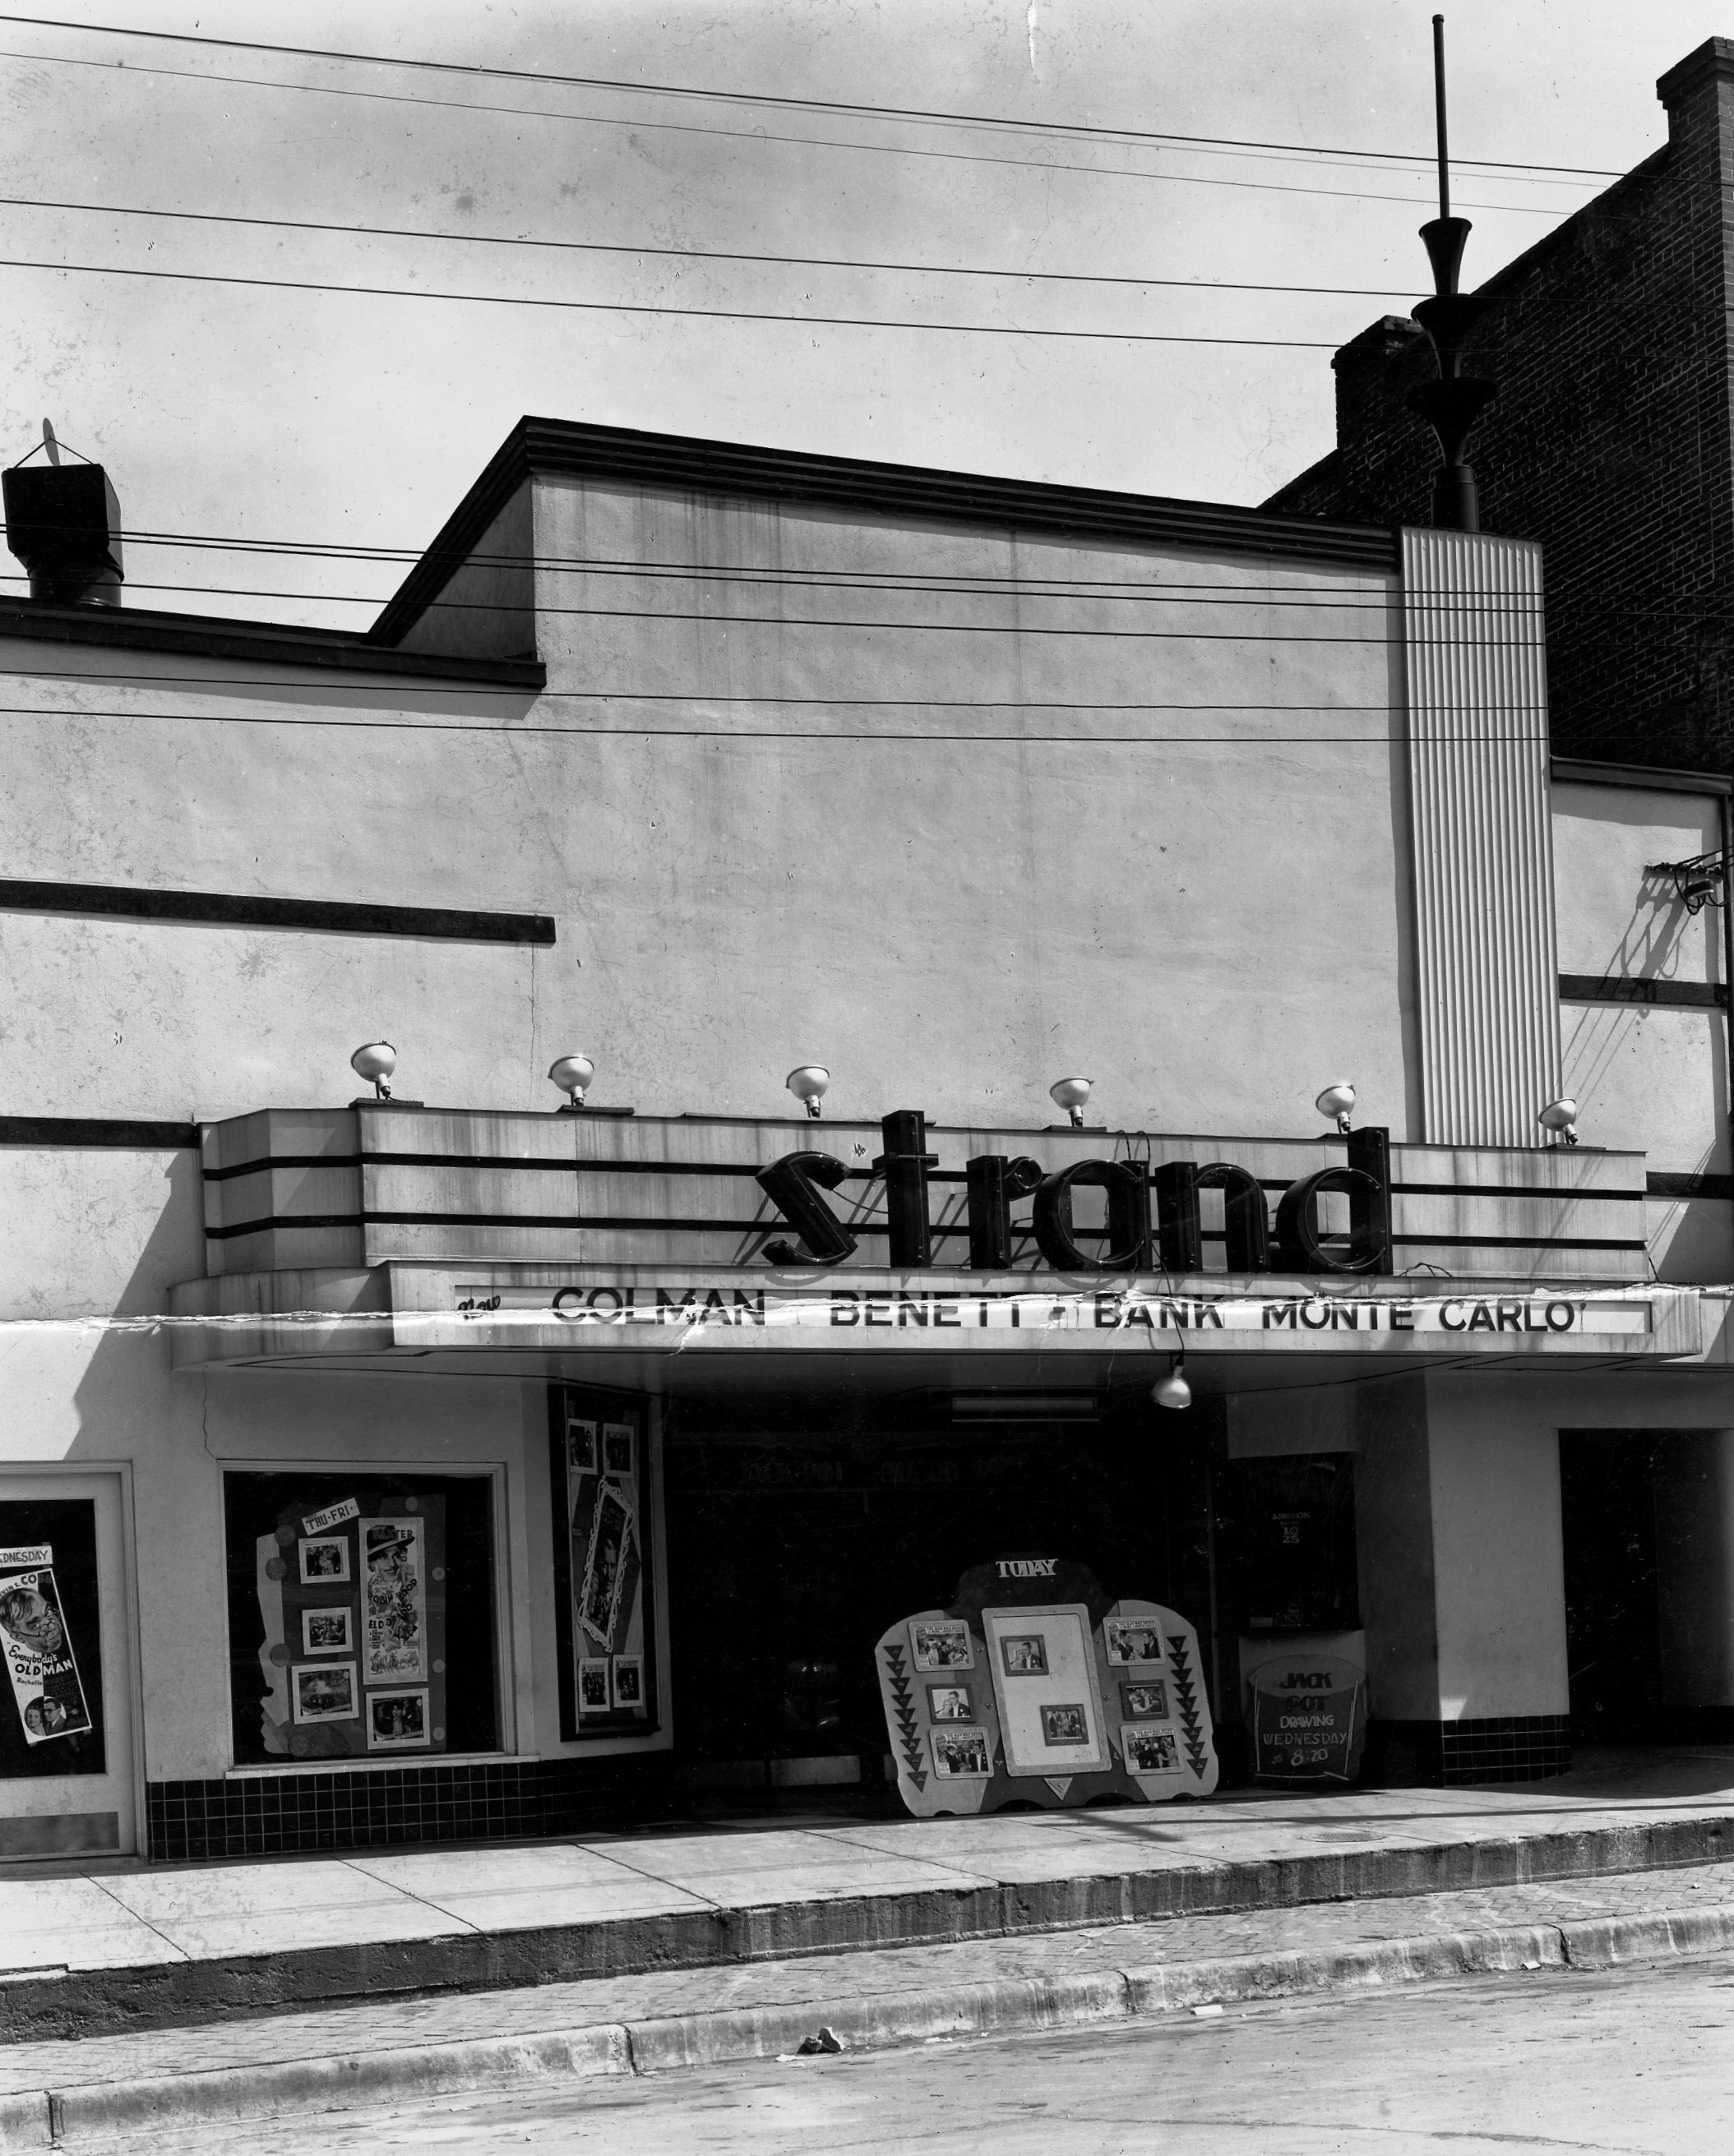 The Strand Theatre decked out in Art Deco style, c. 1935.